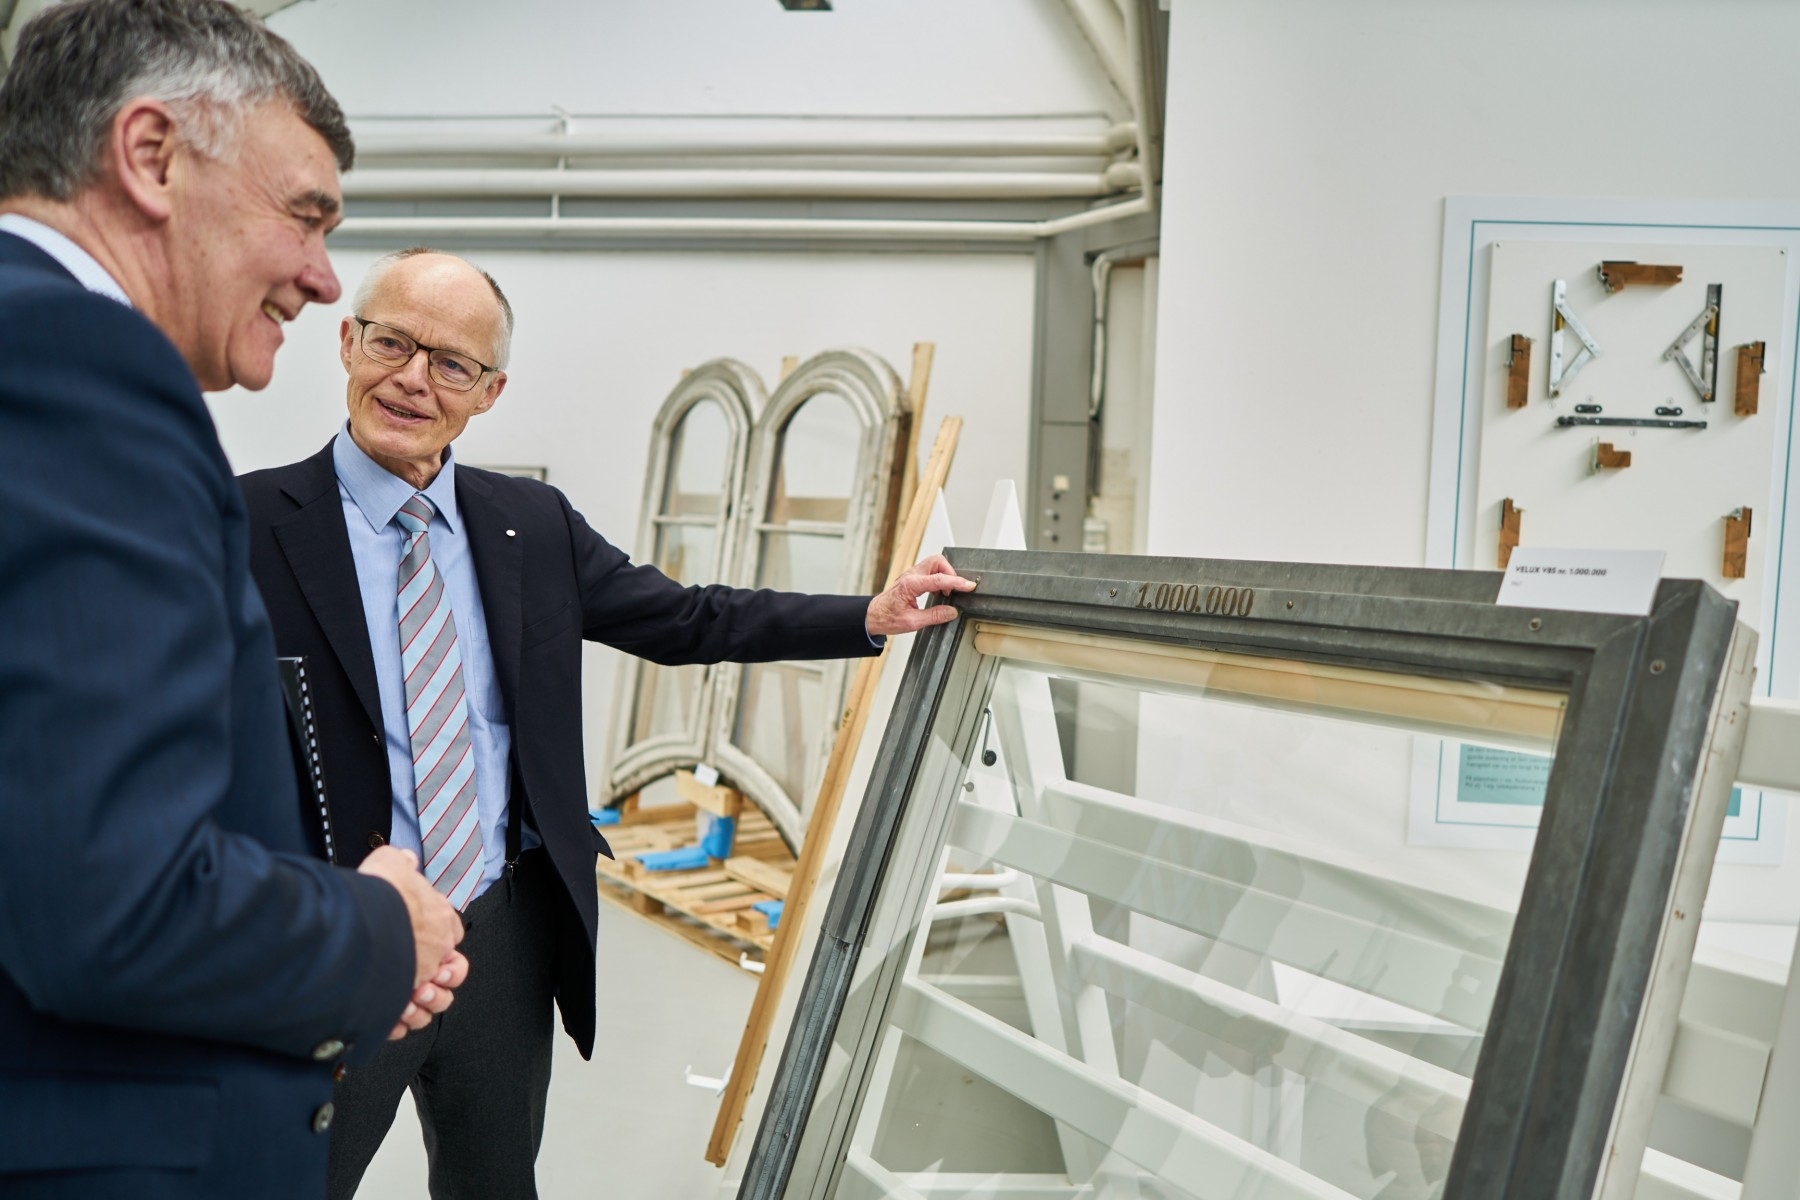 Former CEO of the VELUX Group, Jørgen Tang-Jensen (left), together with Lars Kann-Rasmussen